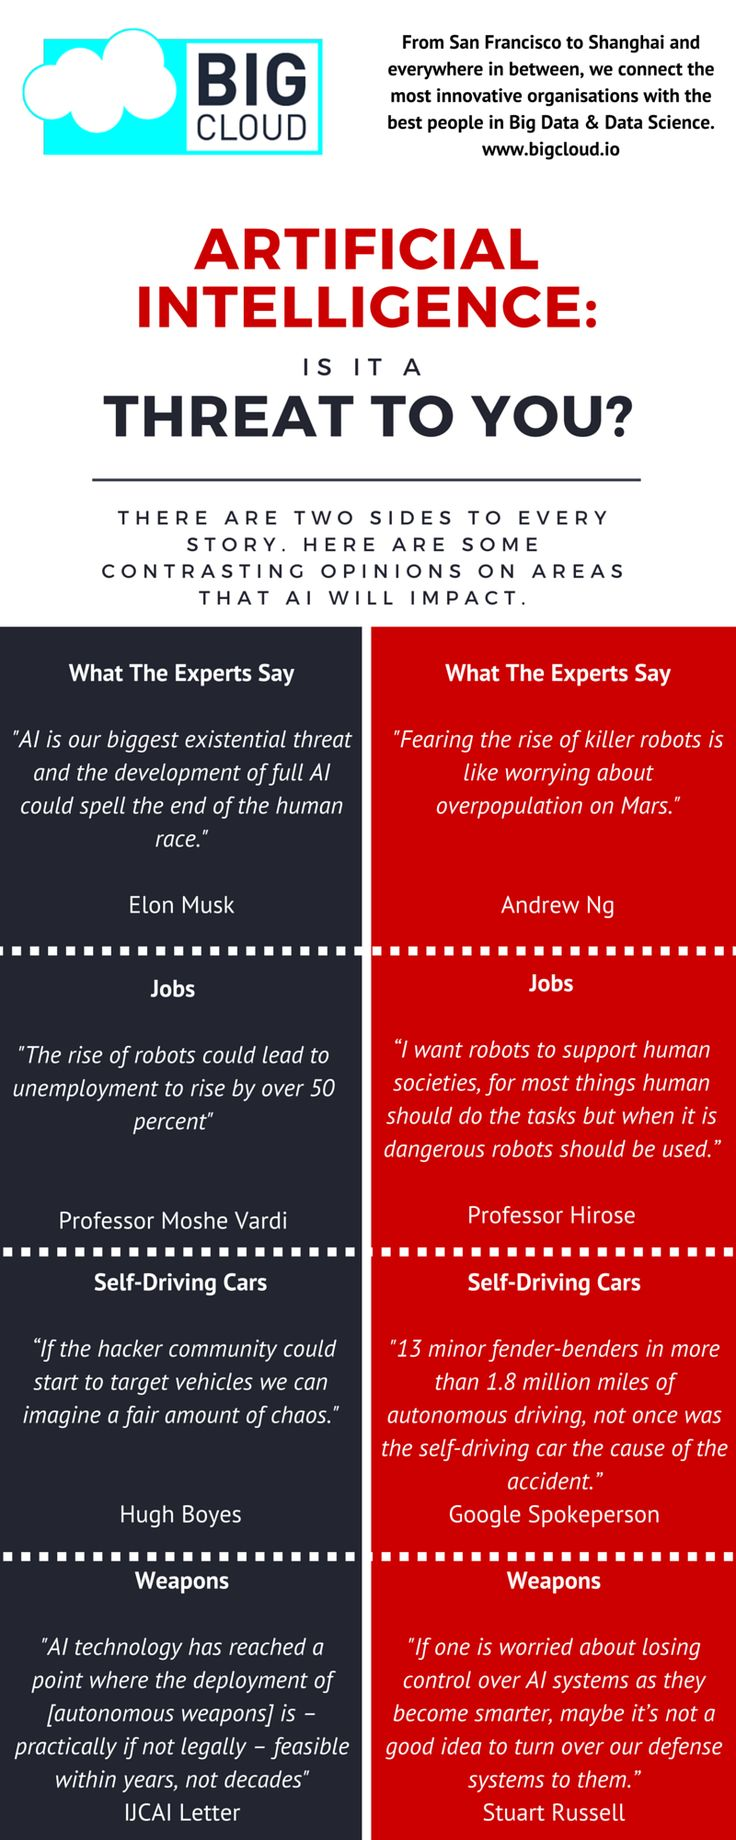 Check out our latest infographic, which discusses whether Artificial Intelligence should be seen as a threat! Please share and let us know what you think!